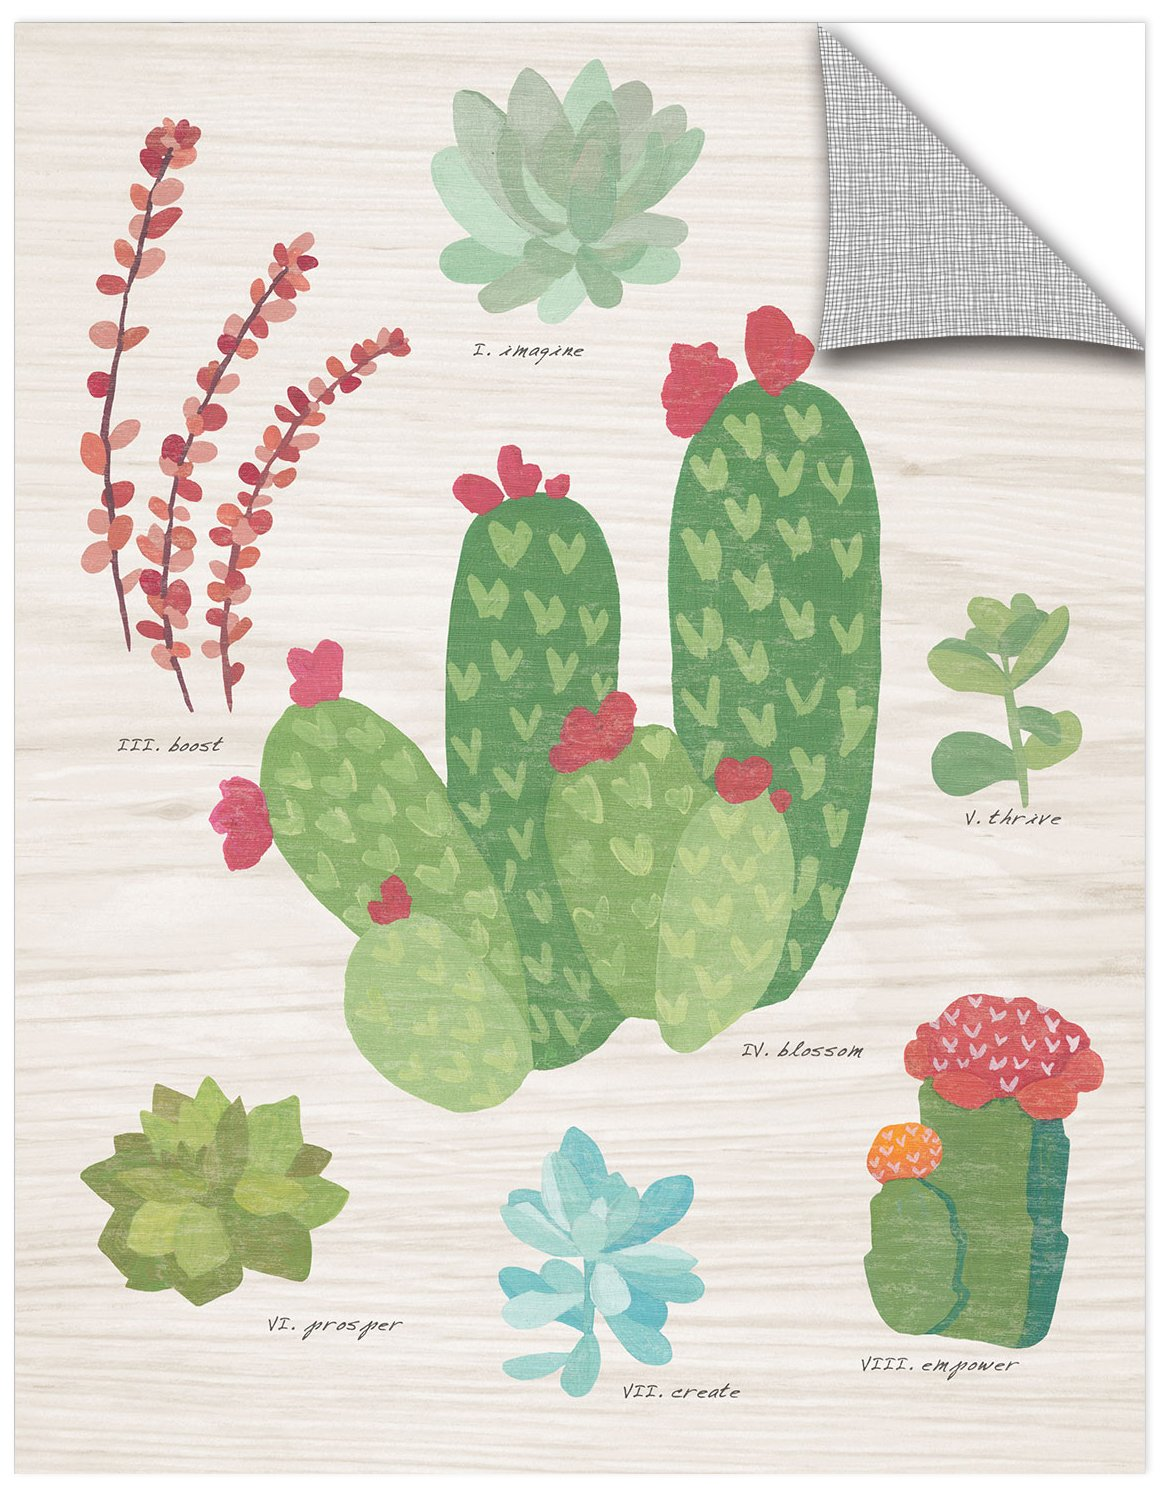 ArtWall Wild Apples Succulent Chart IV on Wood Removable Wall Art Mural 24 x 32